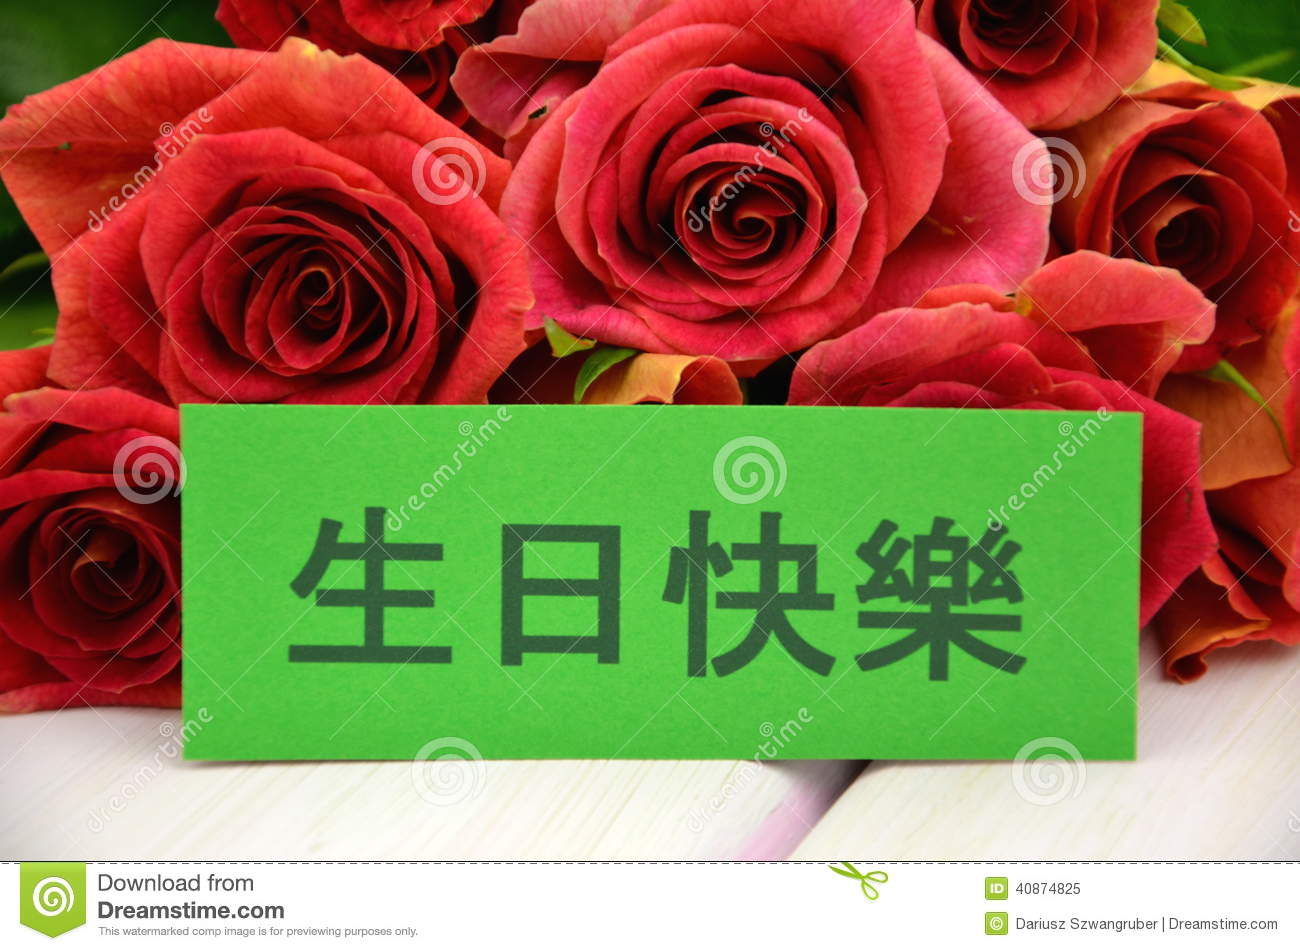 happy birthday message in chinese ; happy-birthday-day-bouquet-gorgeous-red-ros-wishes-chinese-roses-40874825